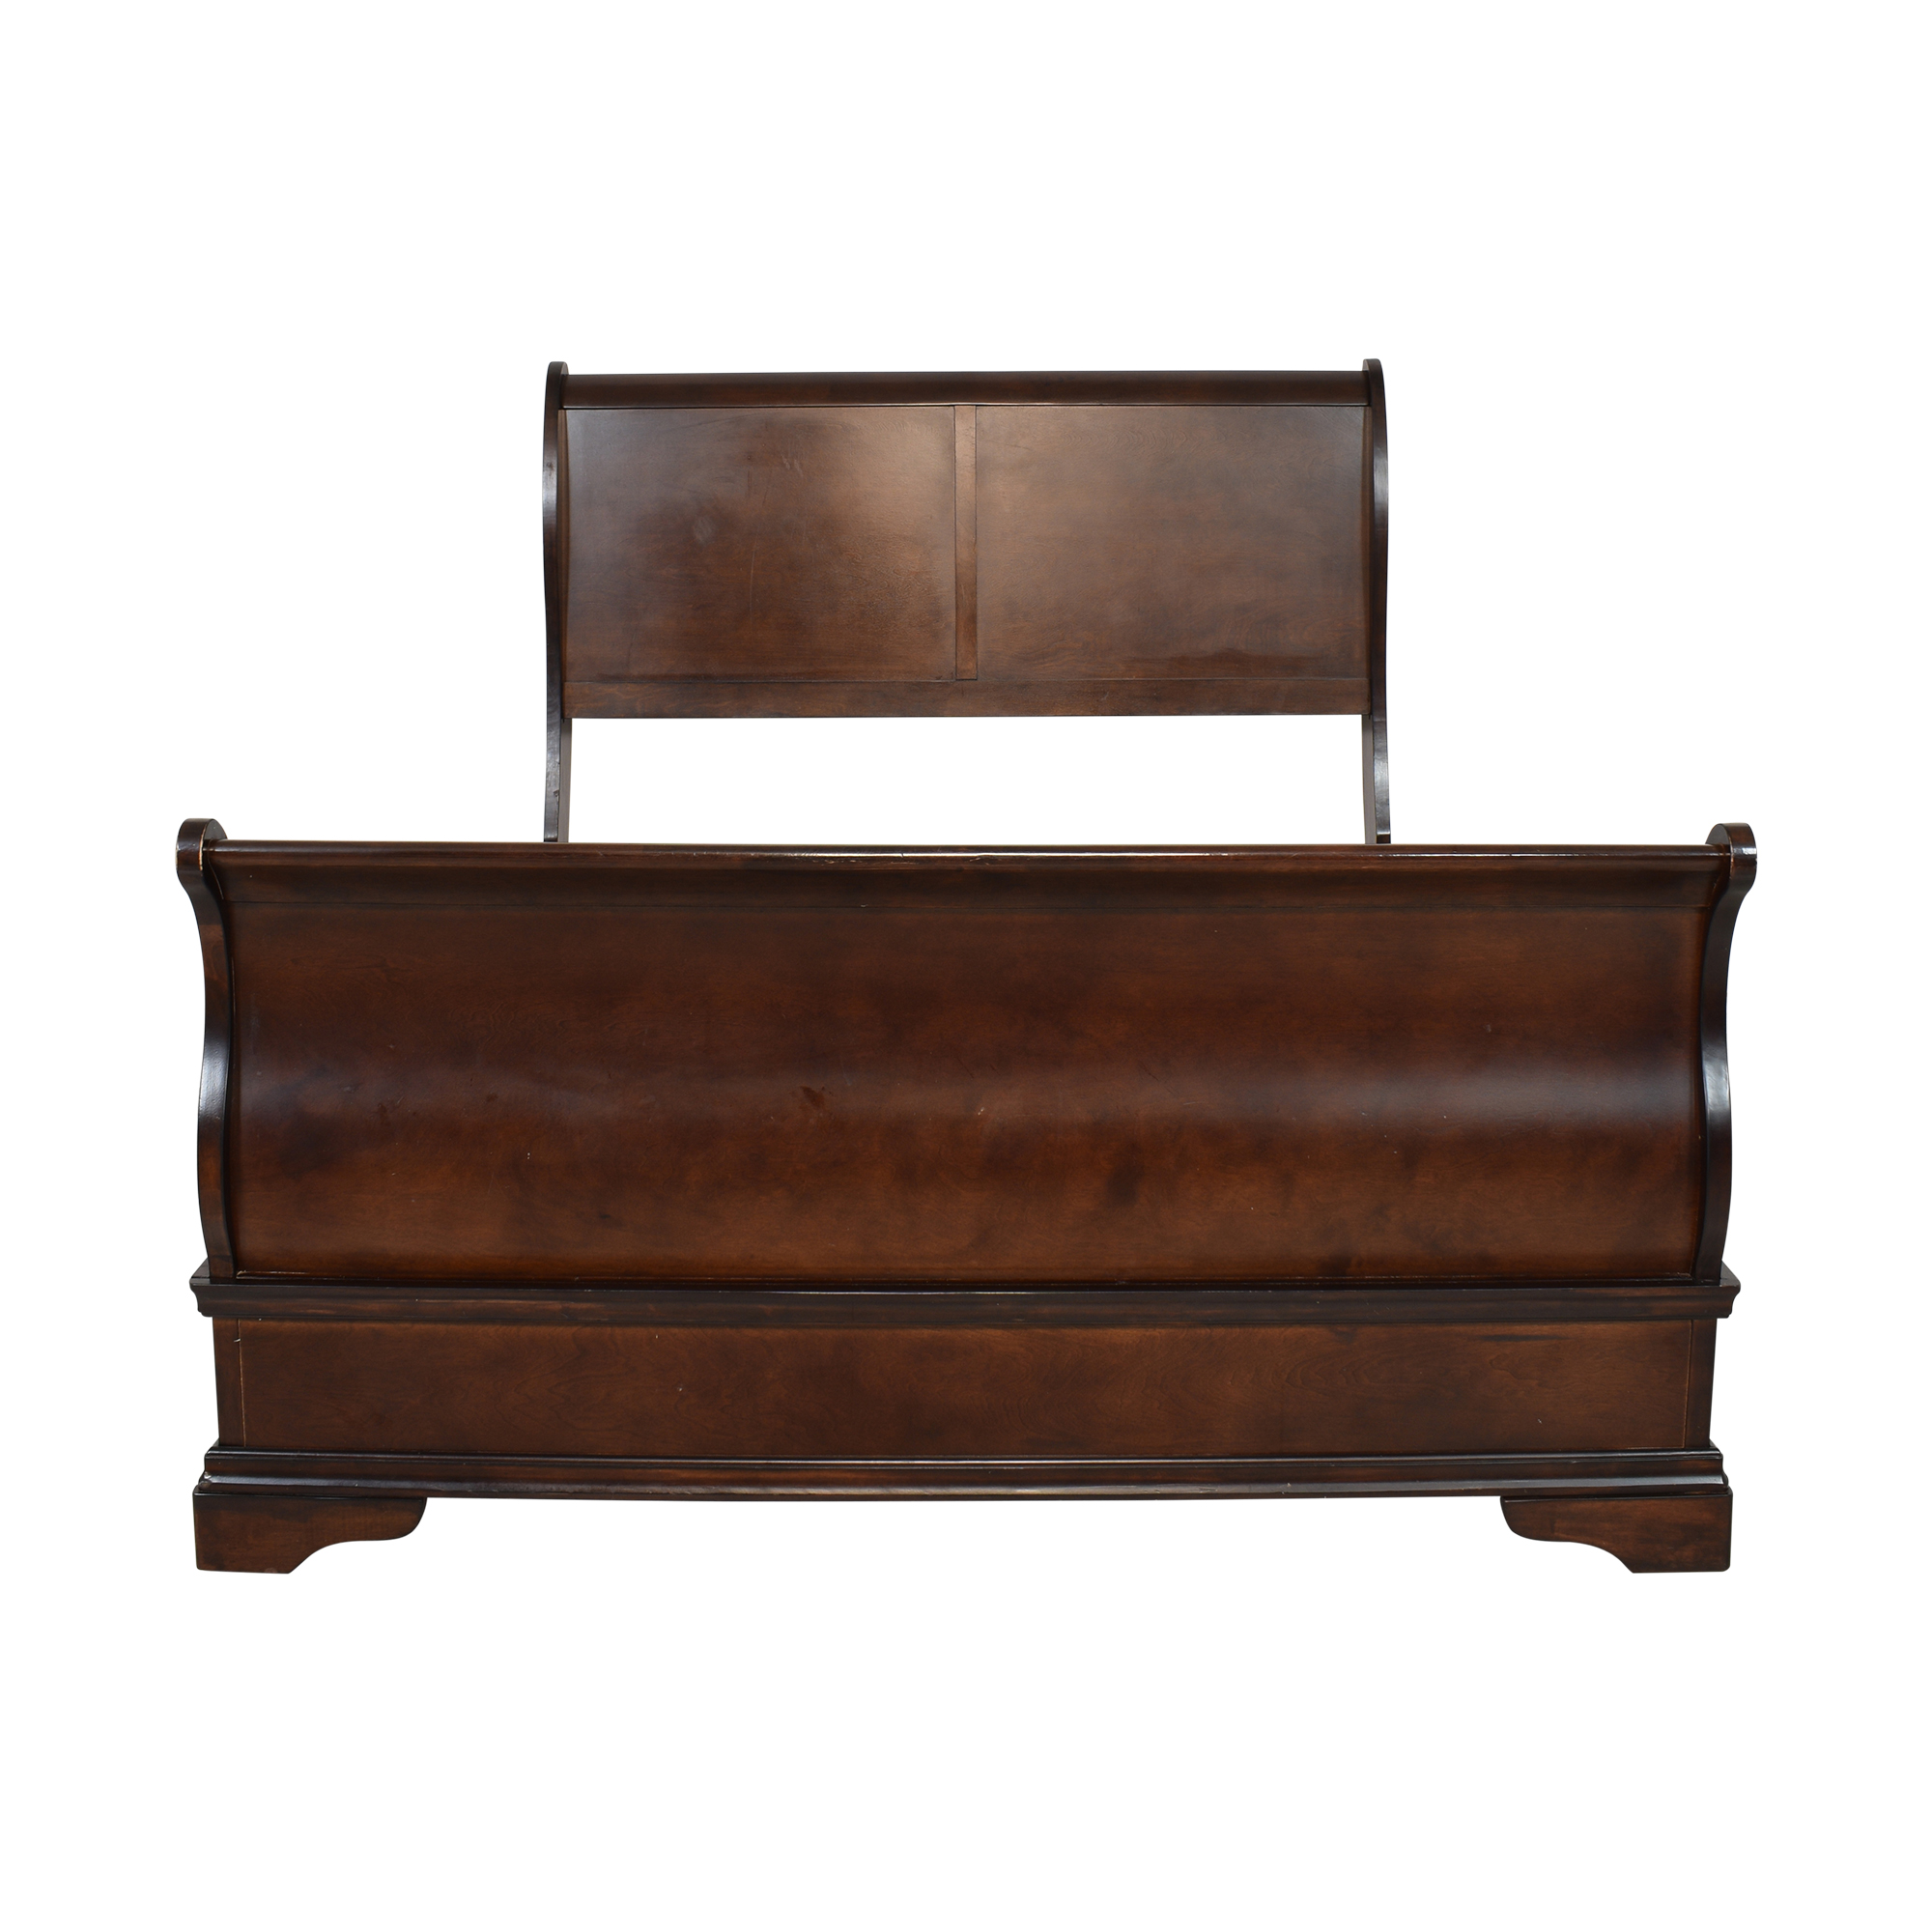 Raymour & Flanigan Raymour & Flanigan Queen Bed pa